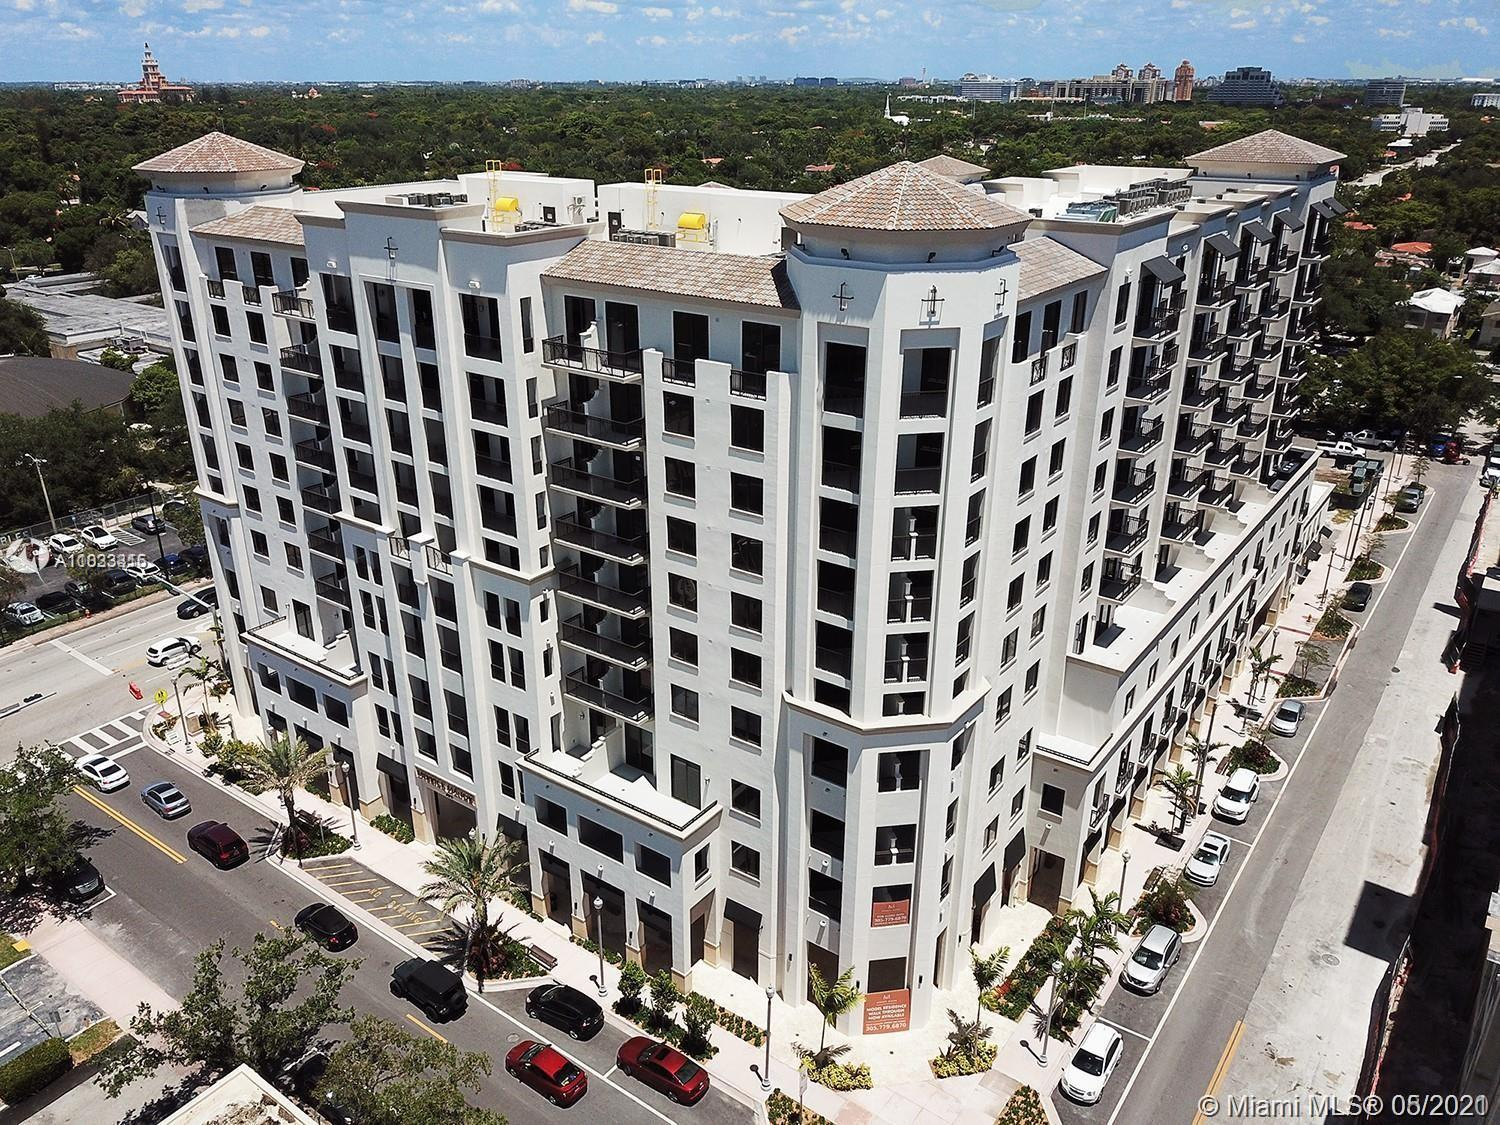 BRAND NEW two-bedroom developer unit with large enclosed terrace in Coral Gables' chic Shops of Merr